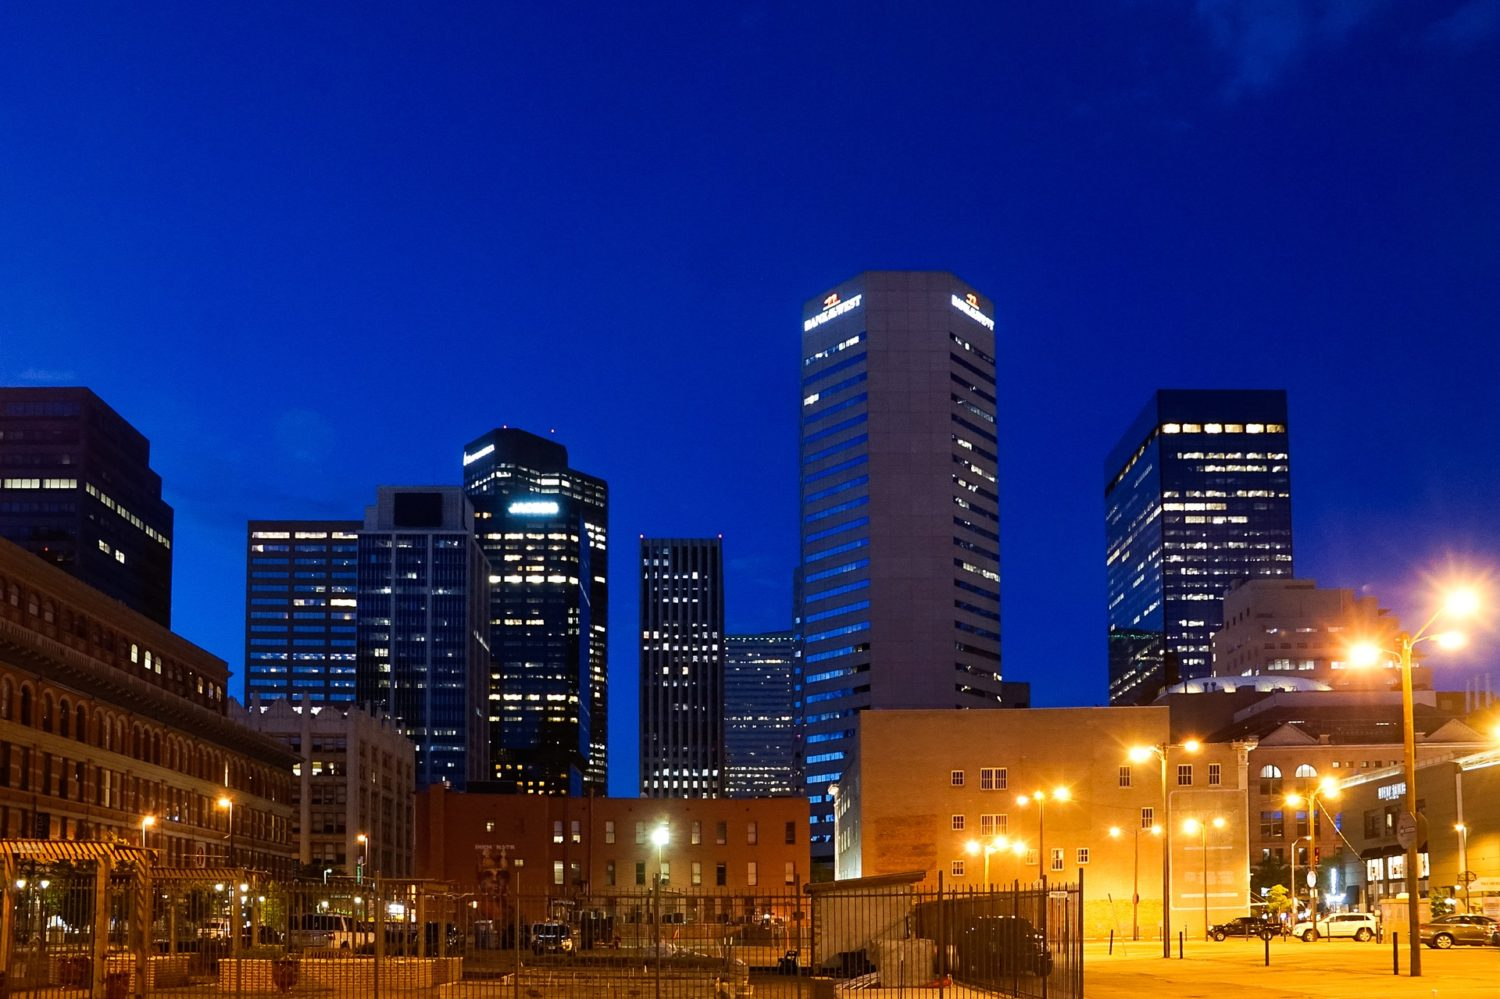 Skyscrapers in Denver, Colorado at night